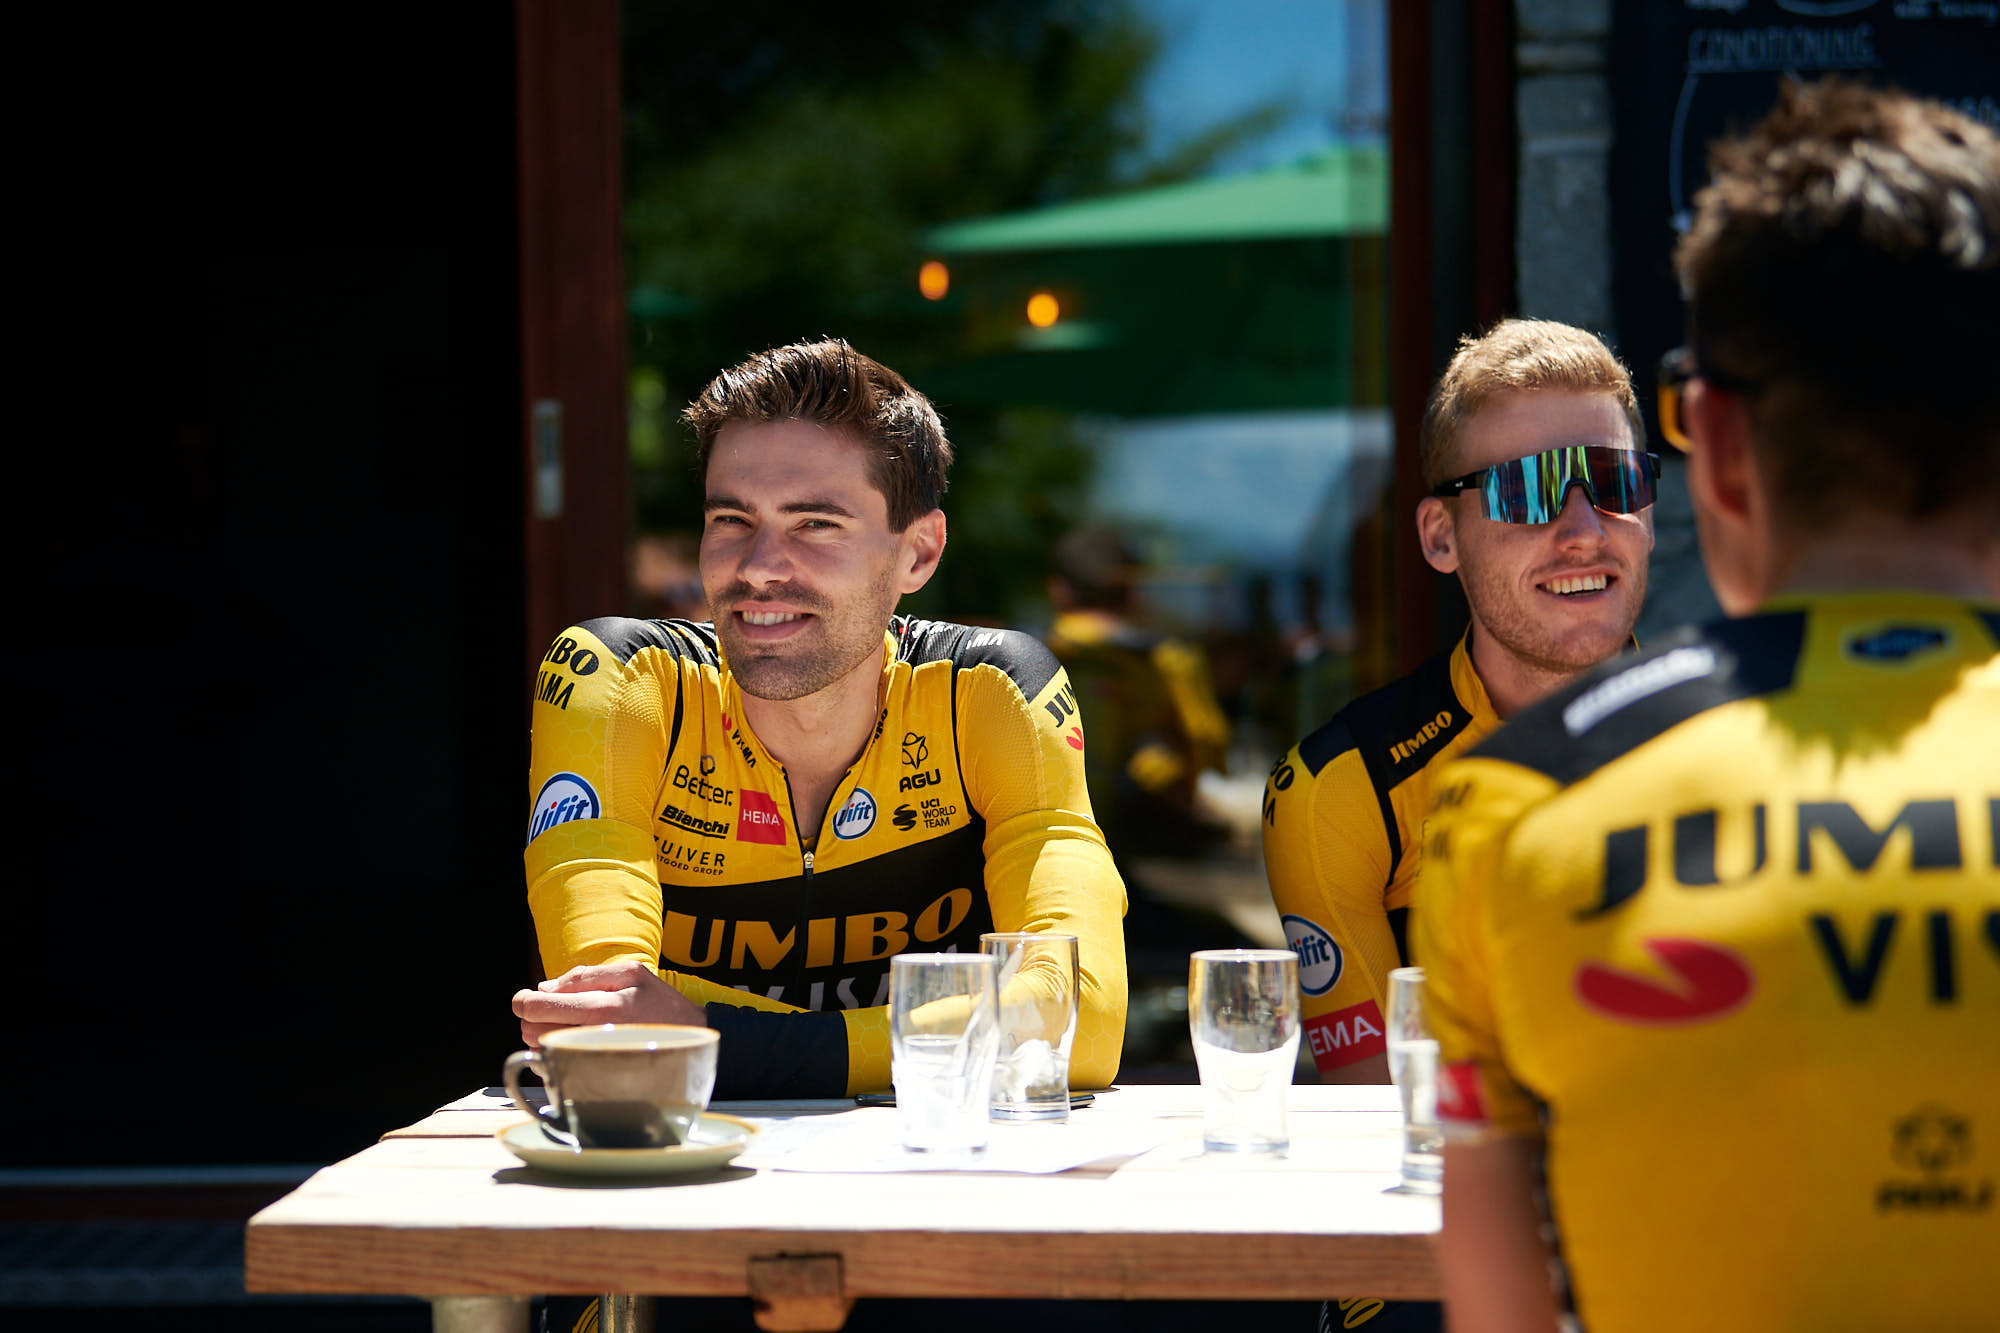 Tom Dumoulin during a coffee stop